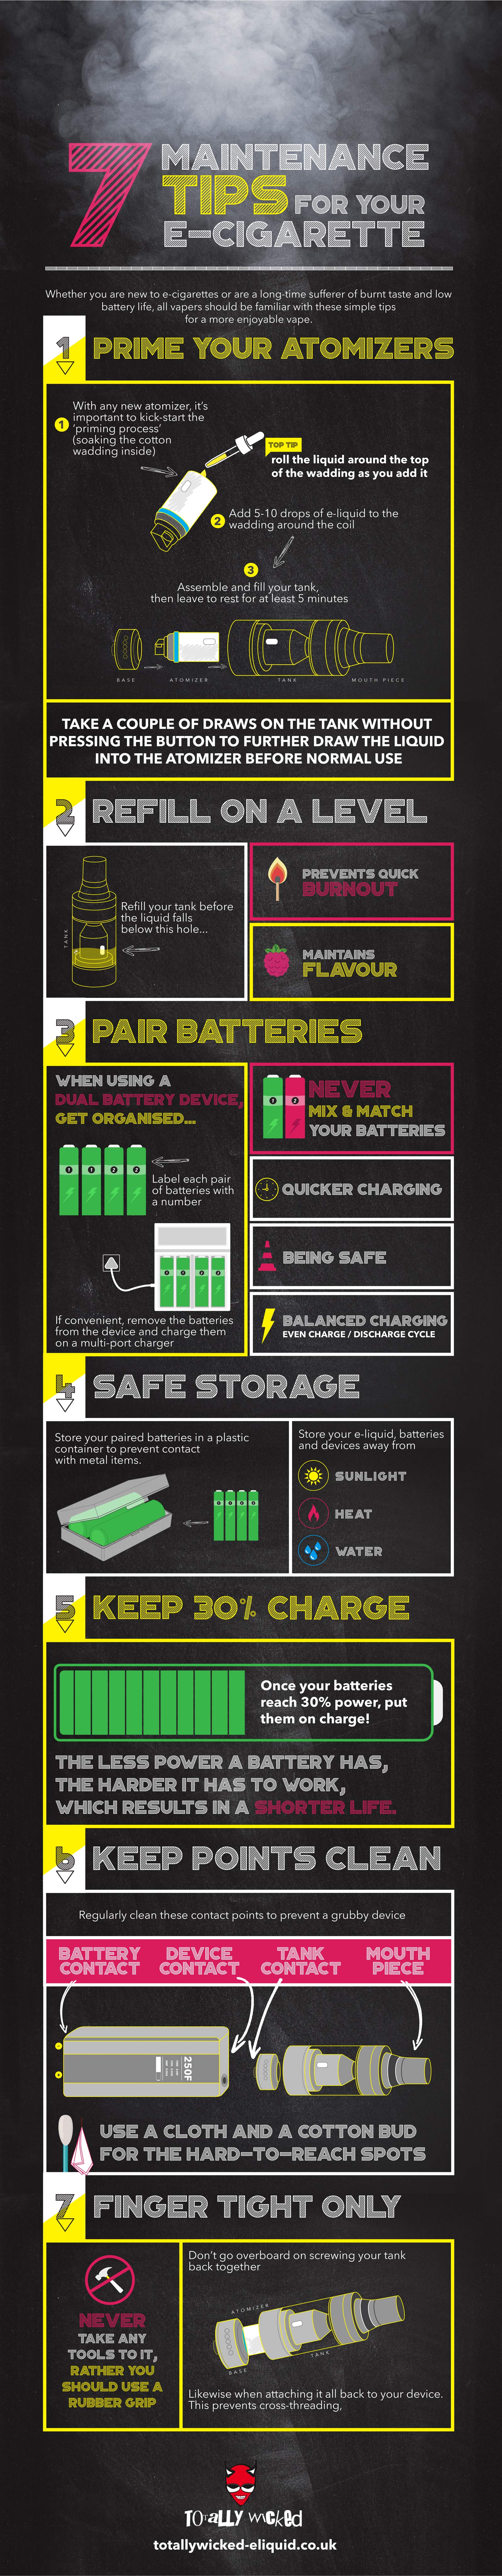 7-maintenance-tips-for-your-e-cigarette-infographic